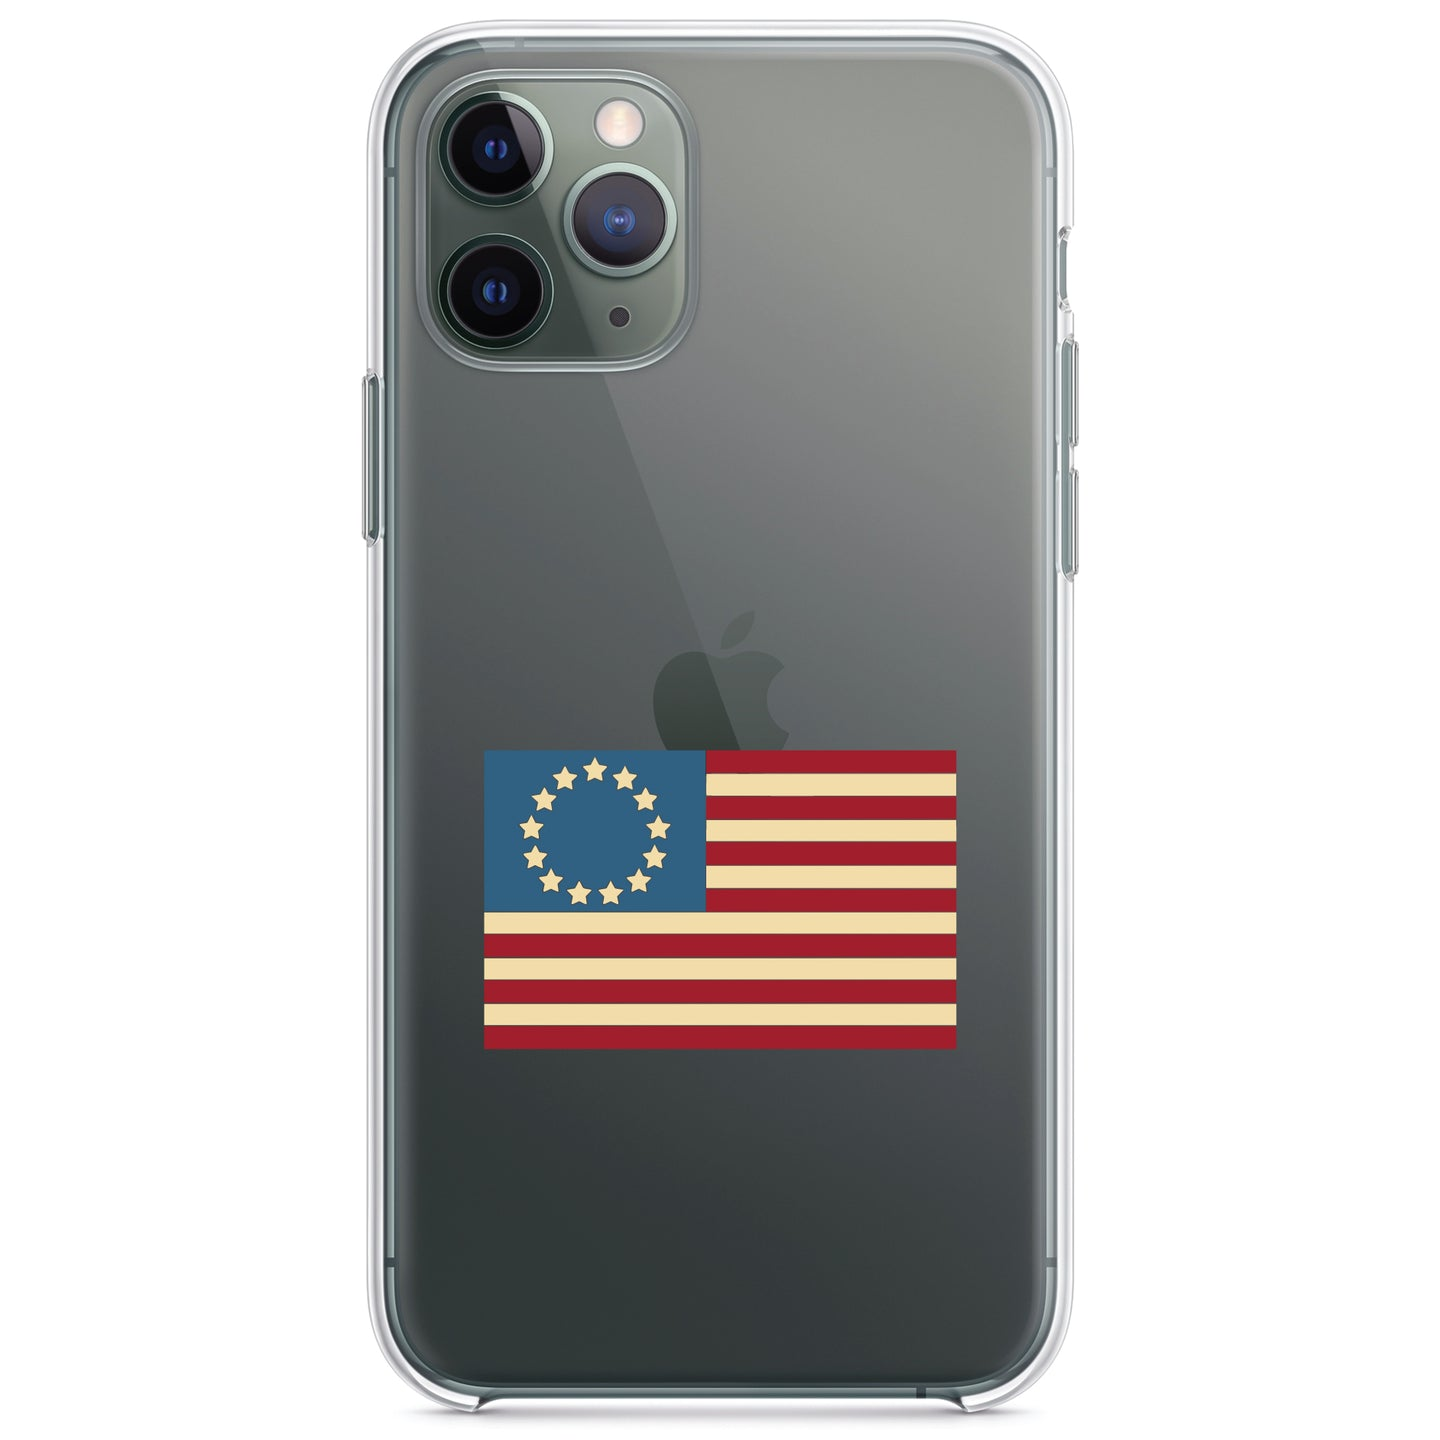 DistinctInk® Clear Shockproof Hybrid Case for Apple iPhone / Samsung Galaxy / Google Pixel - USA Colonial Flag Red White & Blue